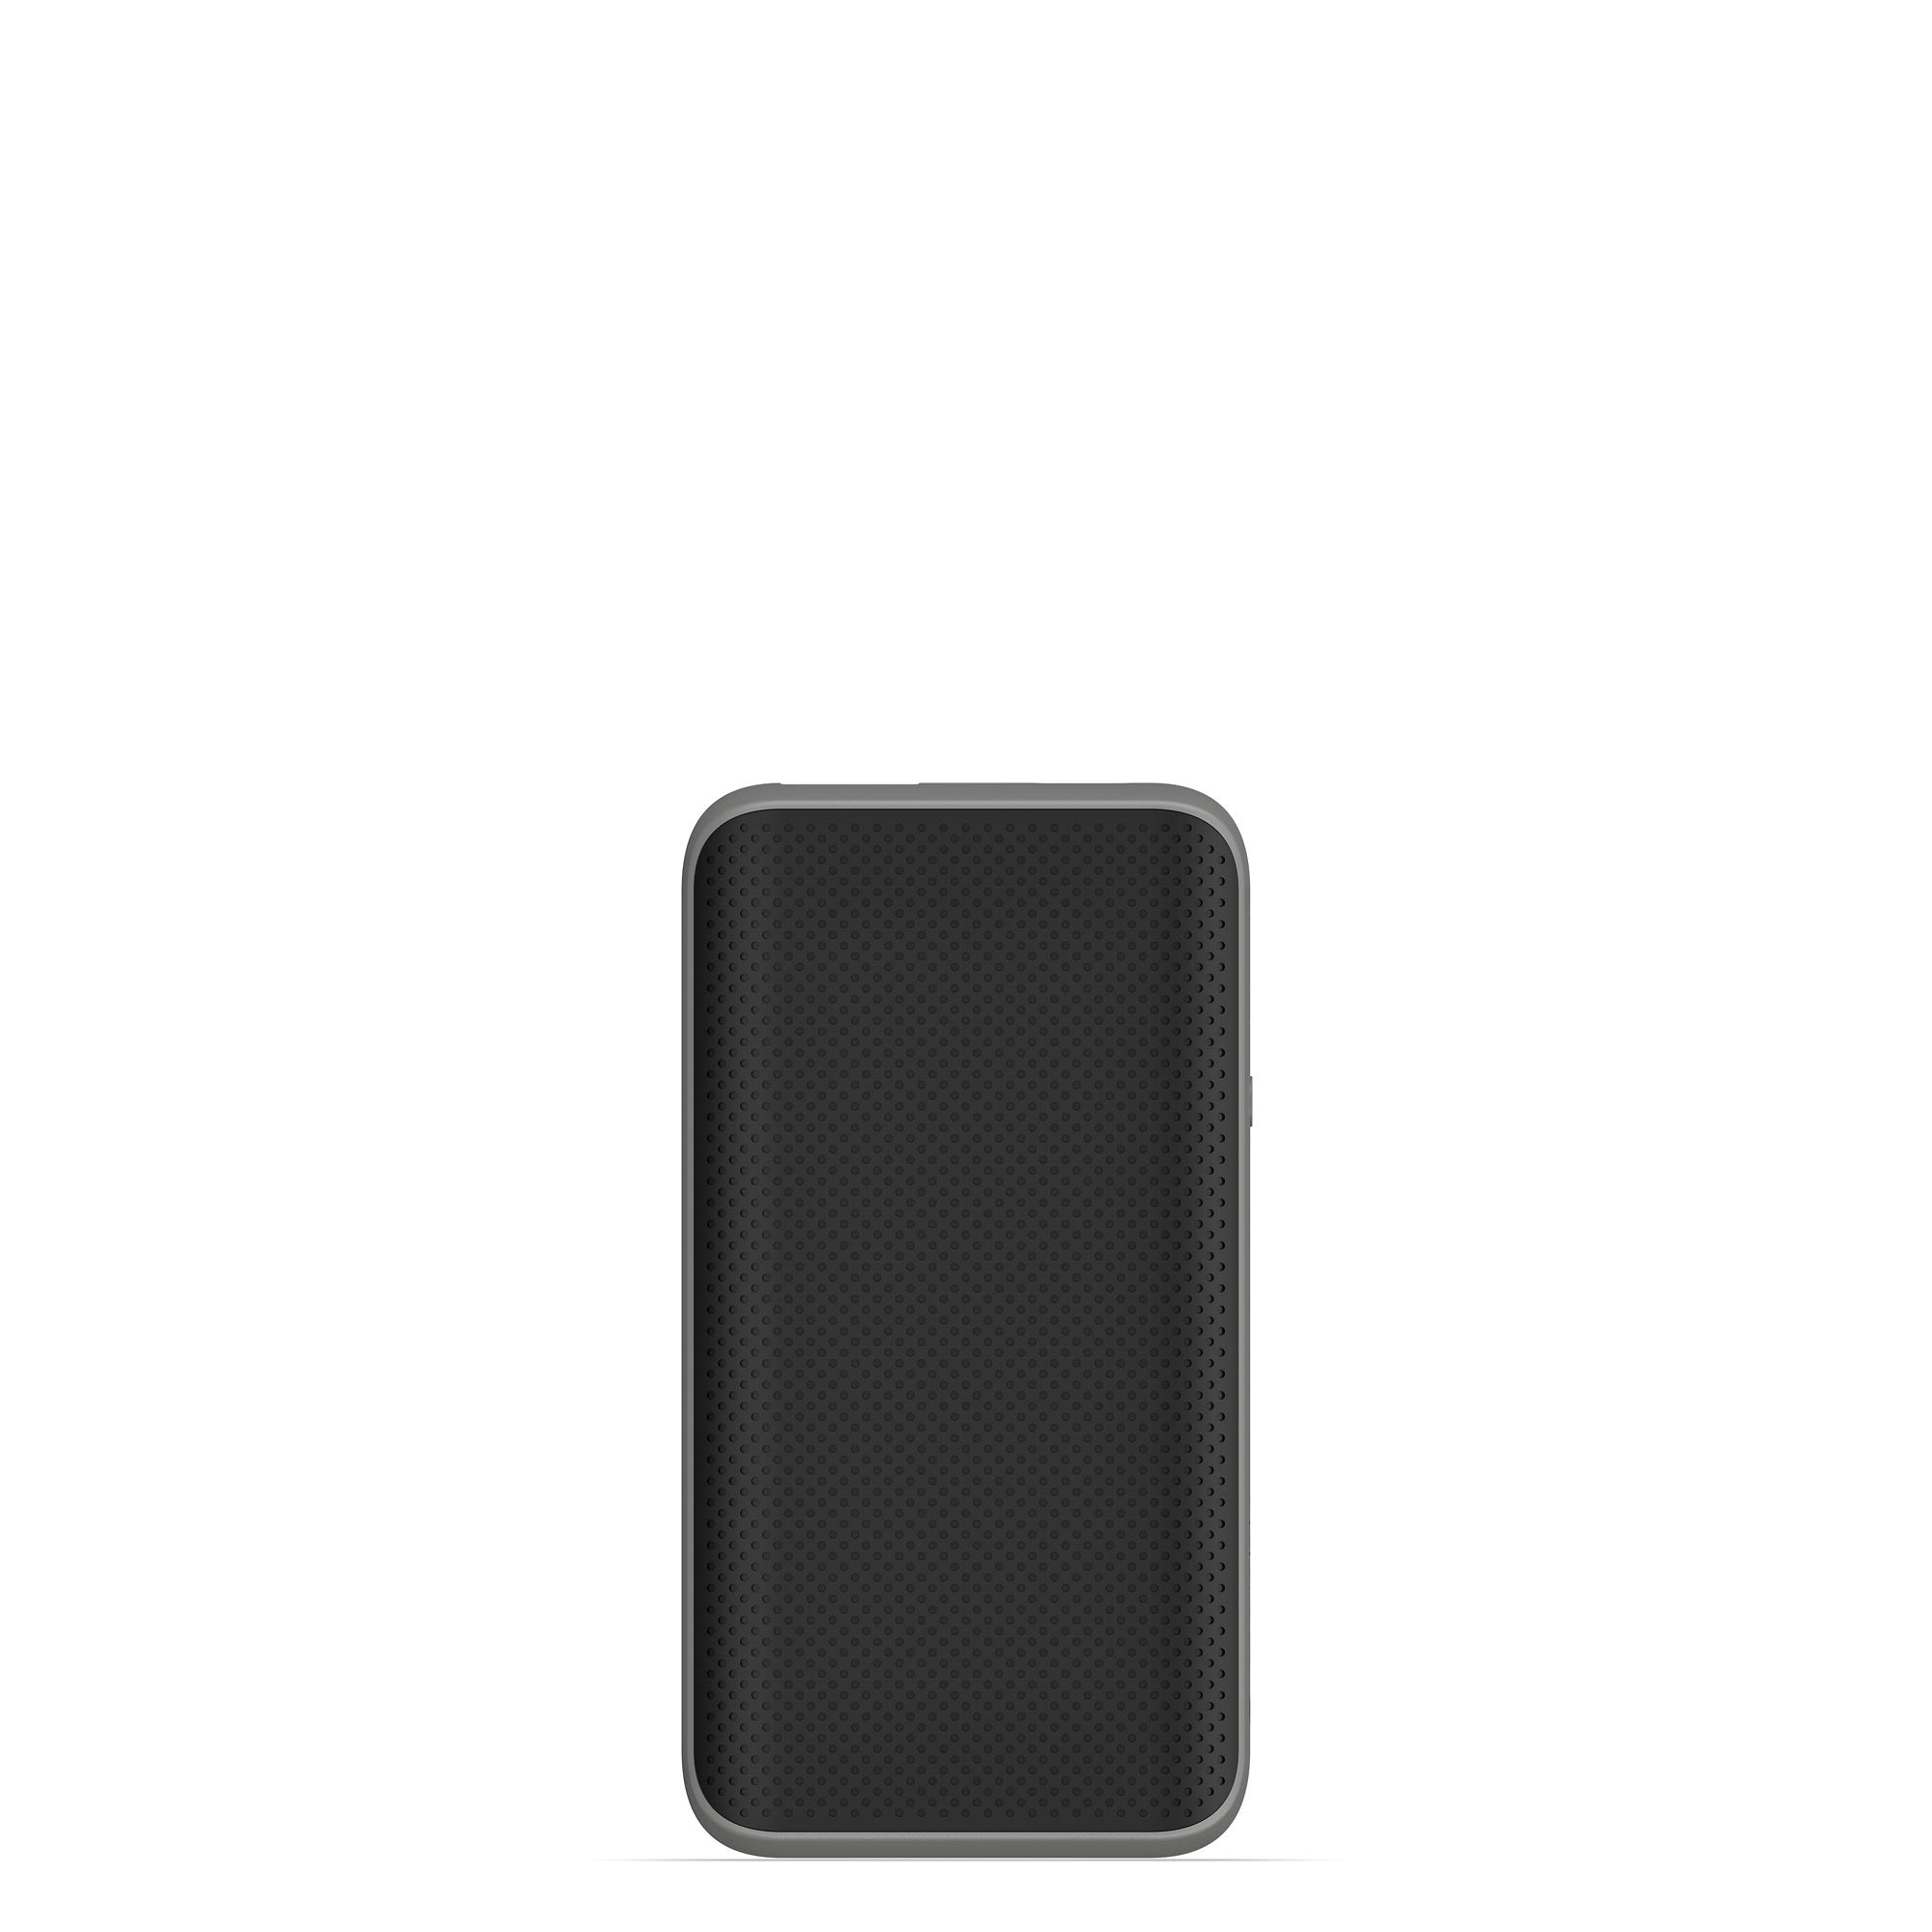 mophie 401101508 power bank Black 10050 mAh